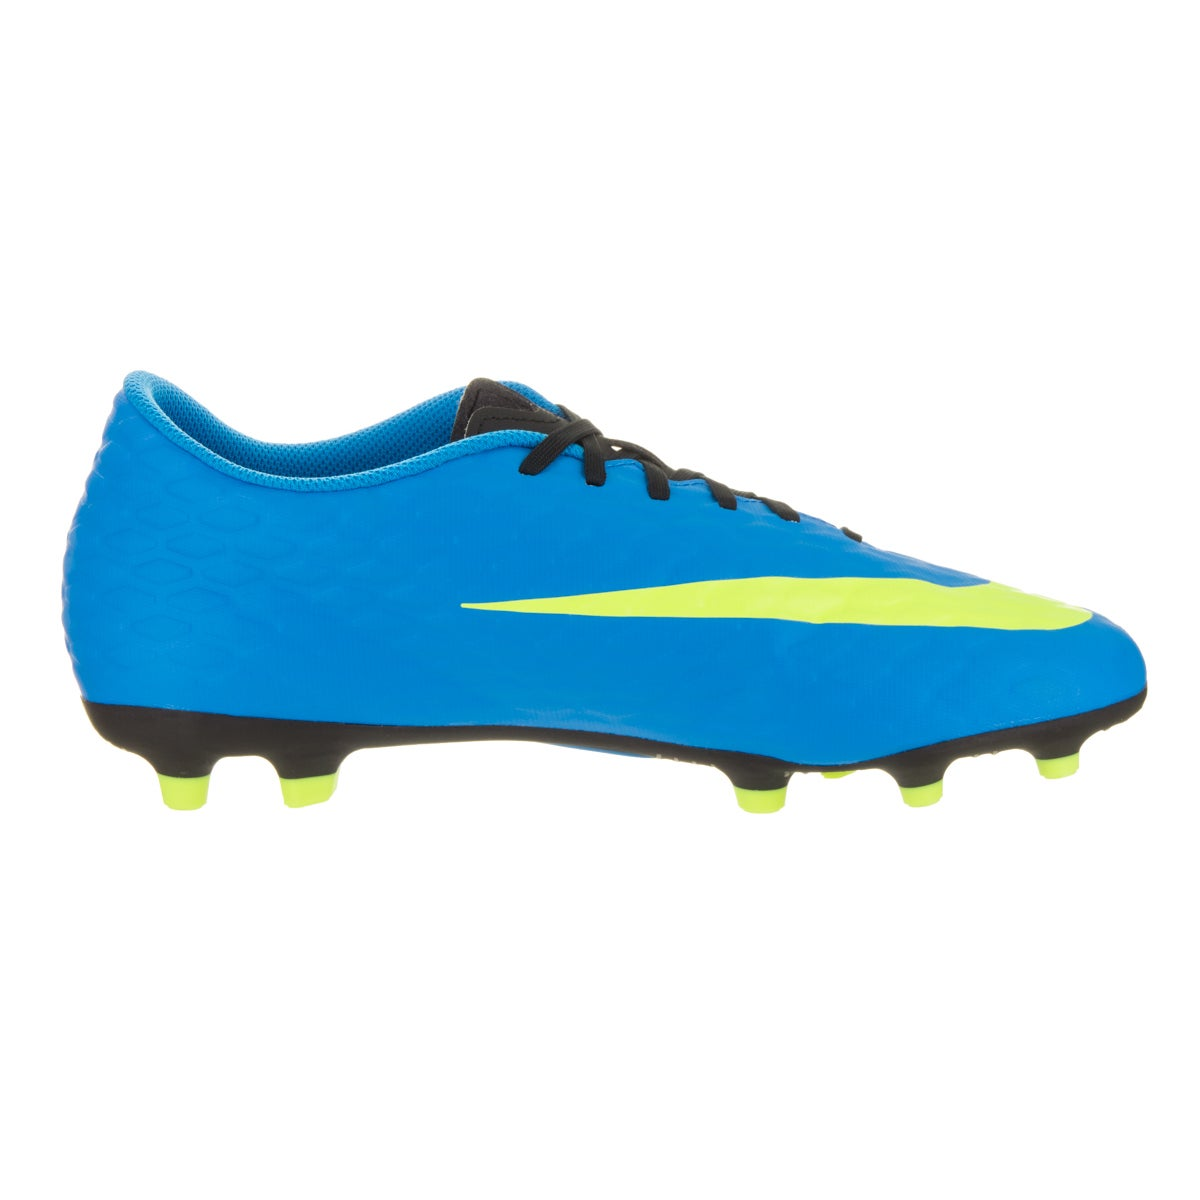 sports shoes ea6fa 1cc84 Shop Nike Men s Hypervenom Phade III FG Soccer Cleat - Free Shipping Today  - Overstock - 16147990